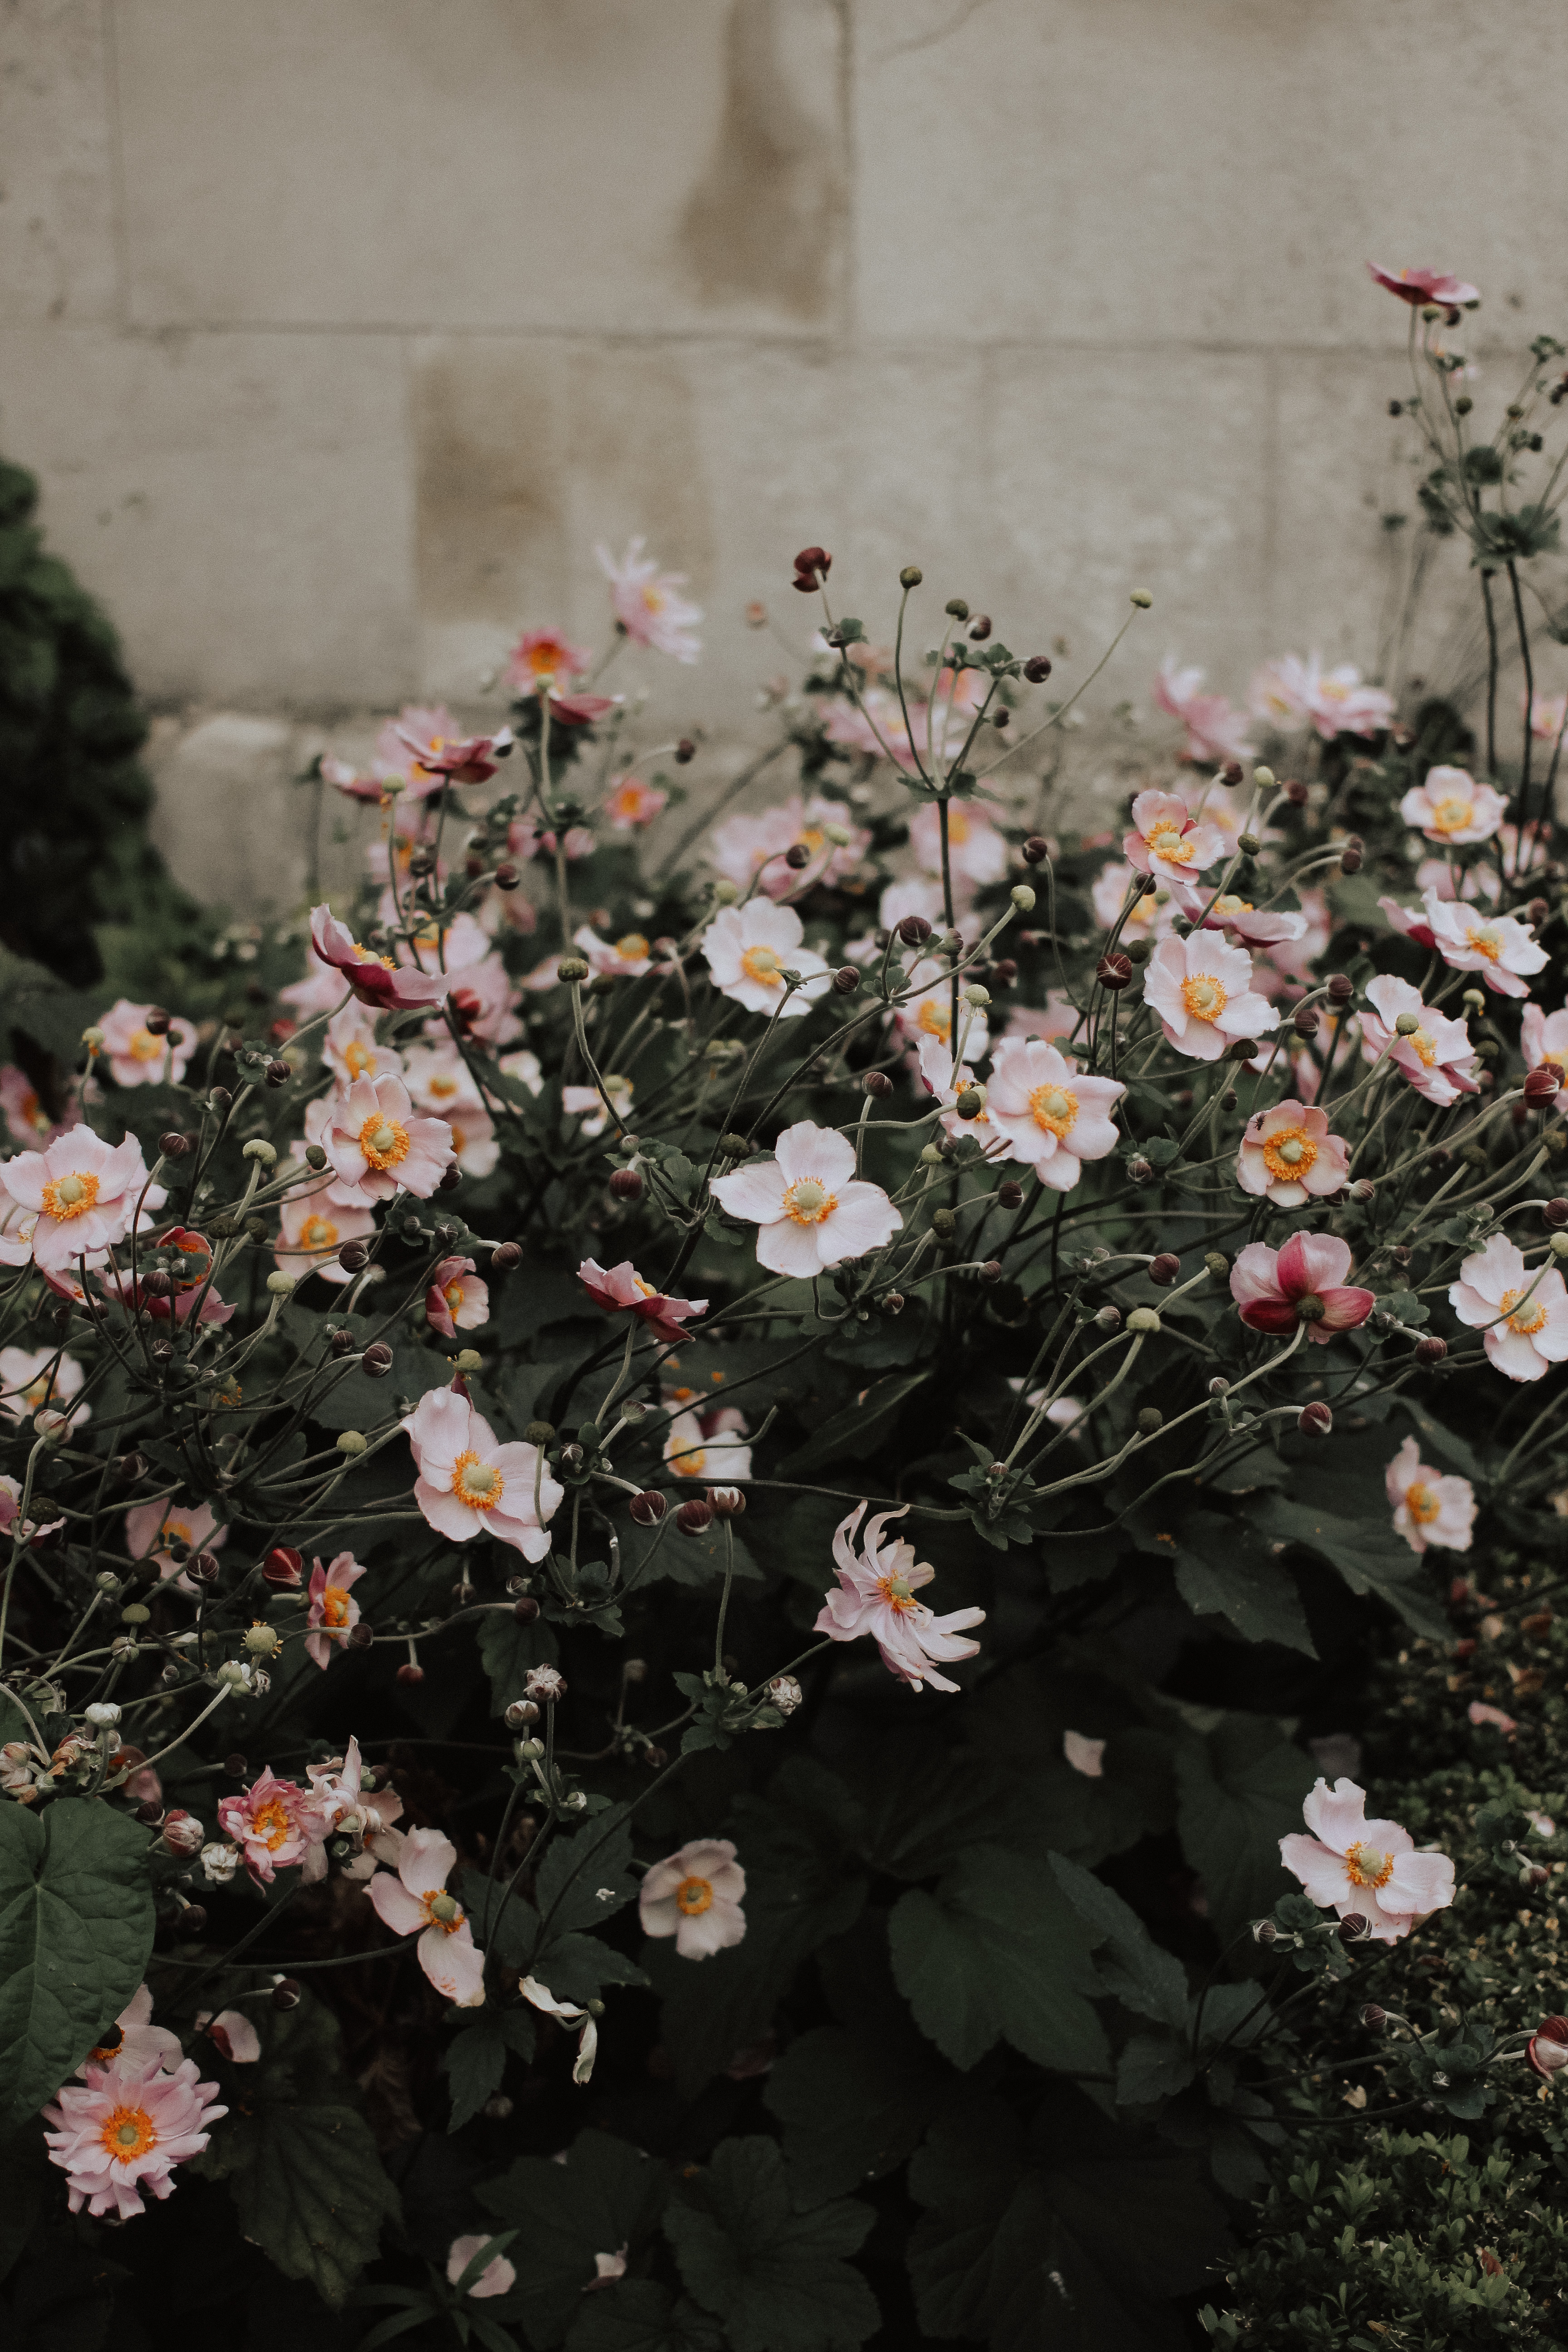 The Social Project, How To Make Friends, Social, Social Blogger, Social Media, Girl Boss, Entrepreneur, Creative, Collaboration, Barrie Wedding Planner, Barrie Social Media, Make Friends Club, London England, Travel, Travel Photography, St Pauls Cathedral, Flowers